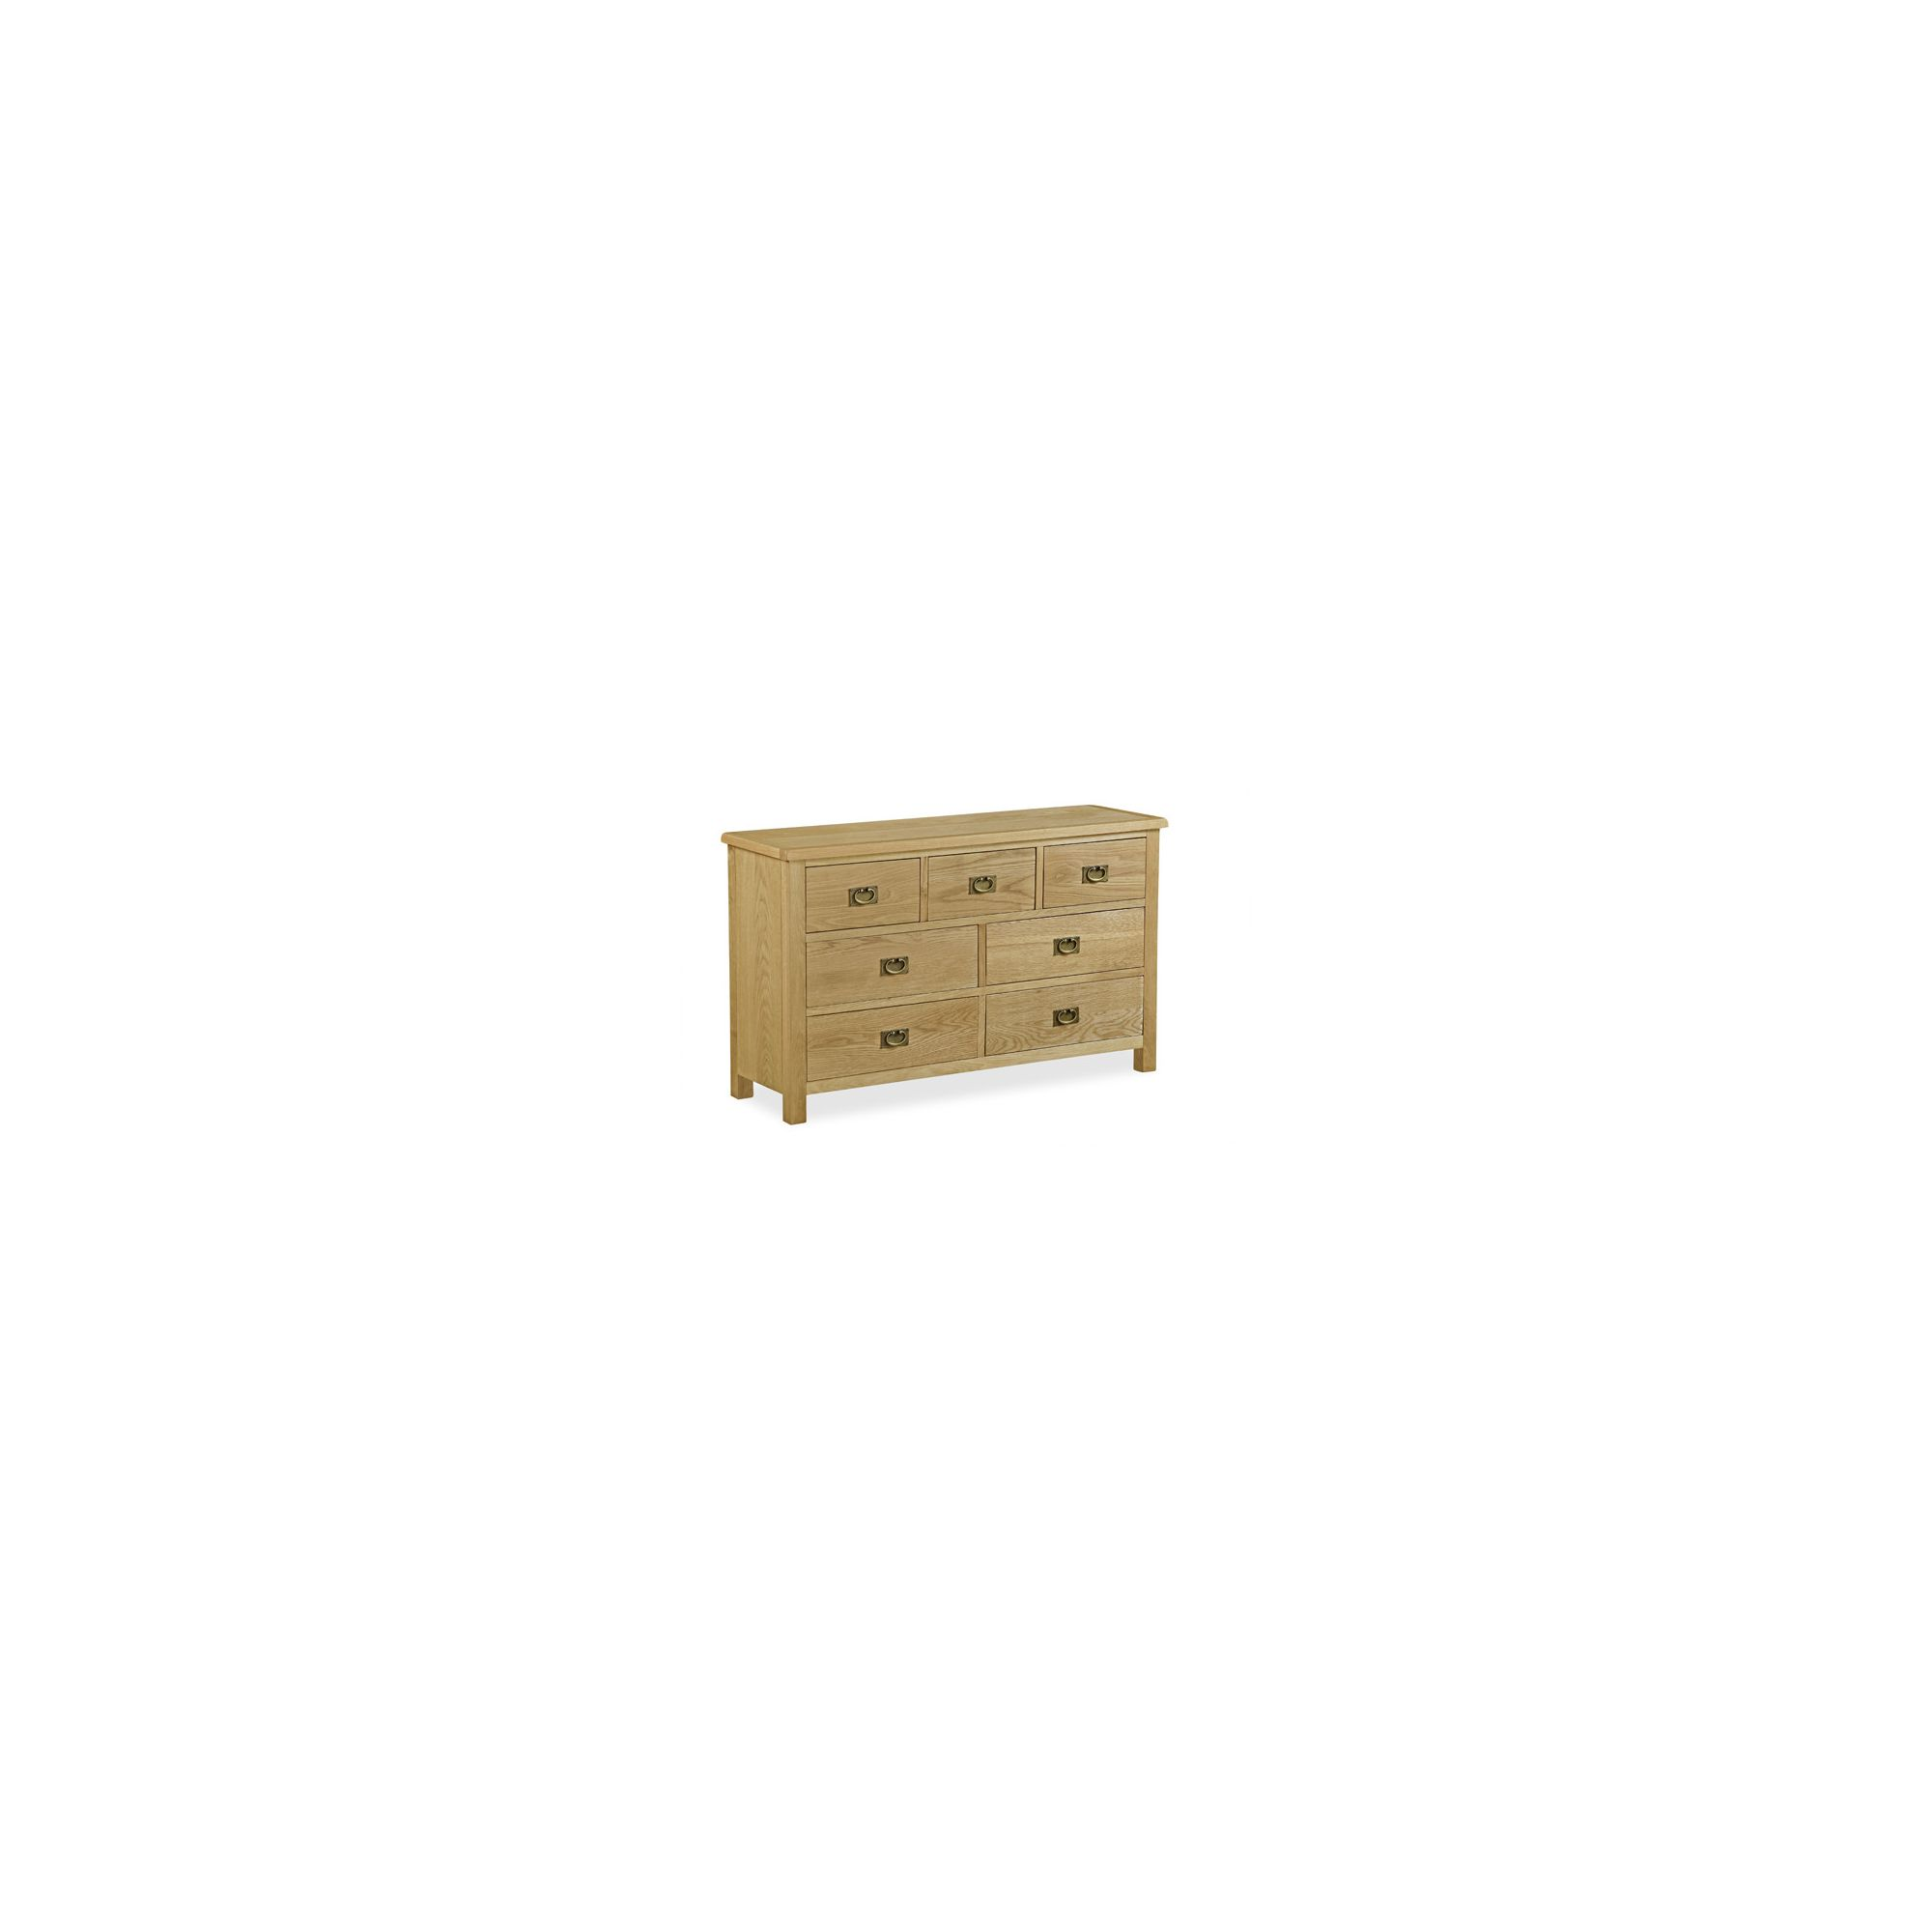 Alterton Furniture Pemberley Petite 3 Over 4 Drawer Chest at Tesco Direct